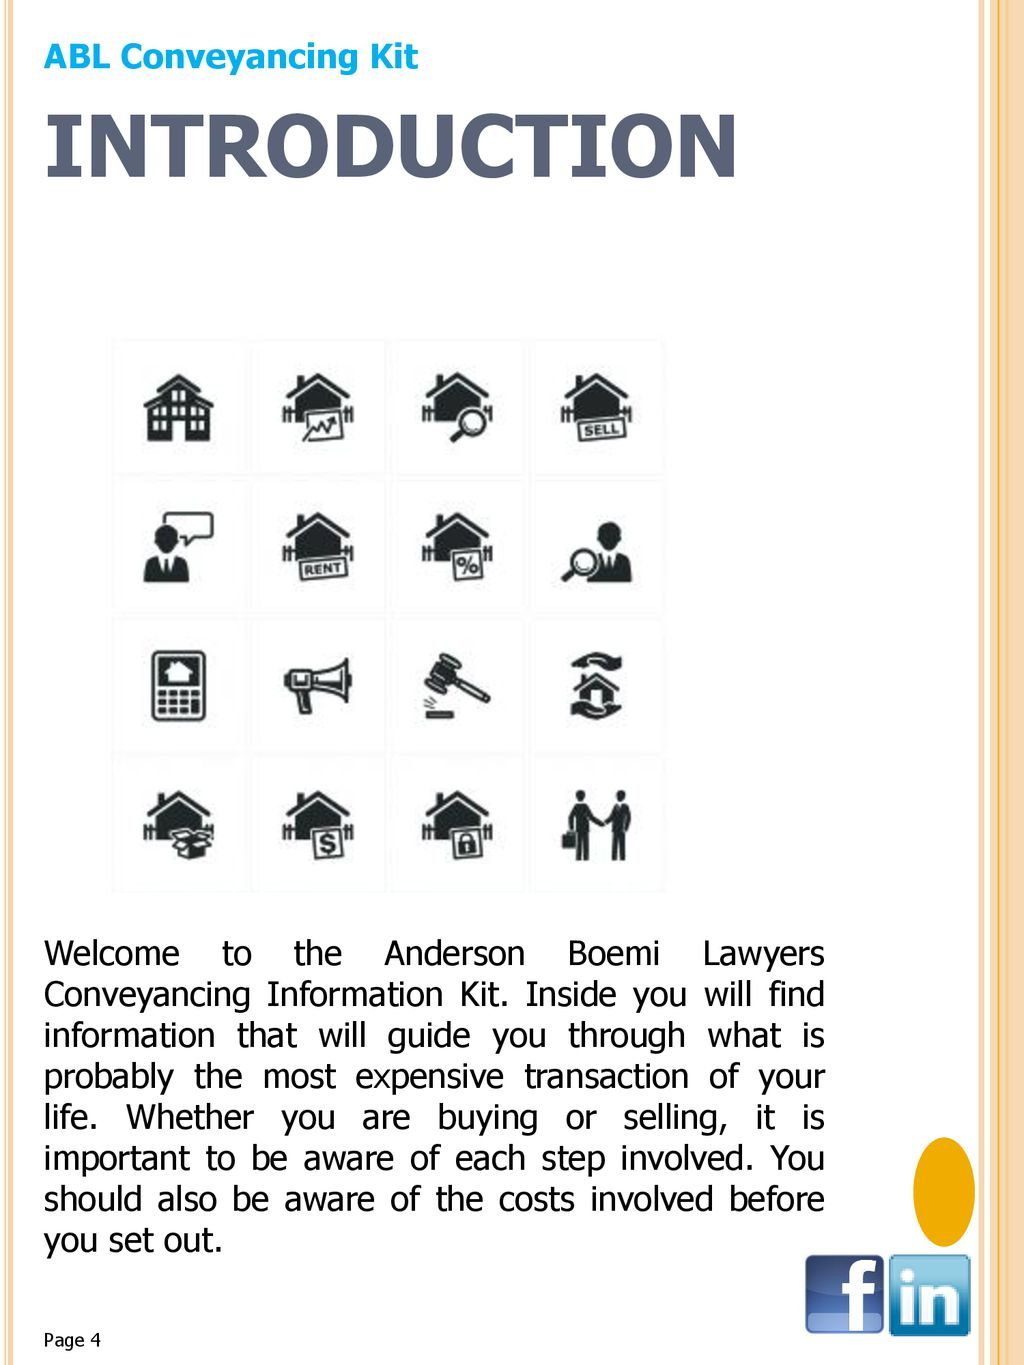 Anderson boemi lawyers ppt download introduction abl conveyancing kit solutioingenieria Images